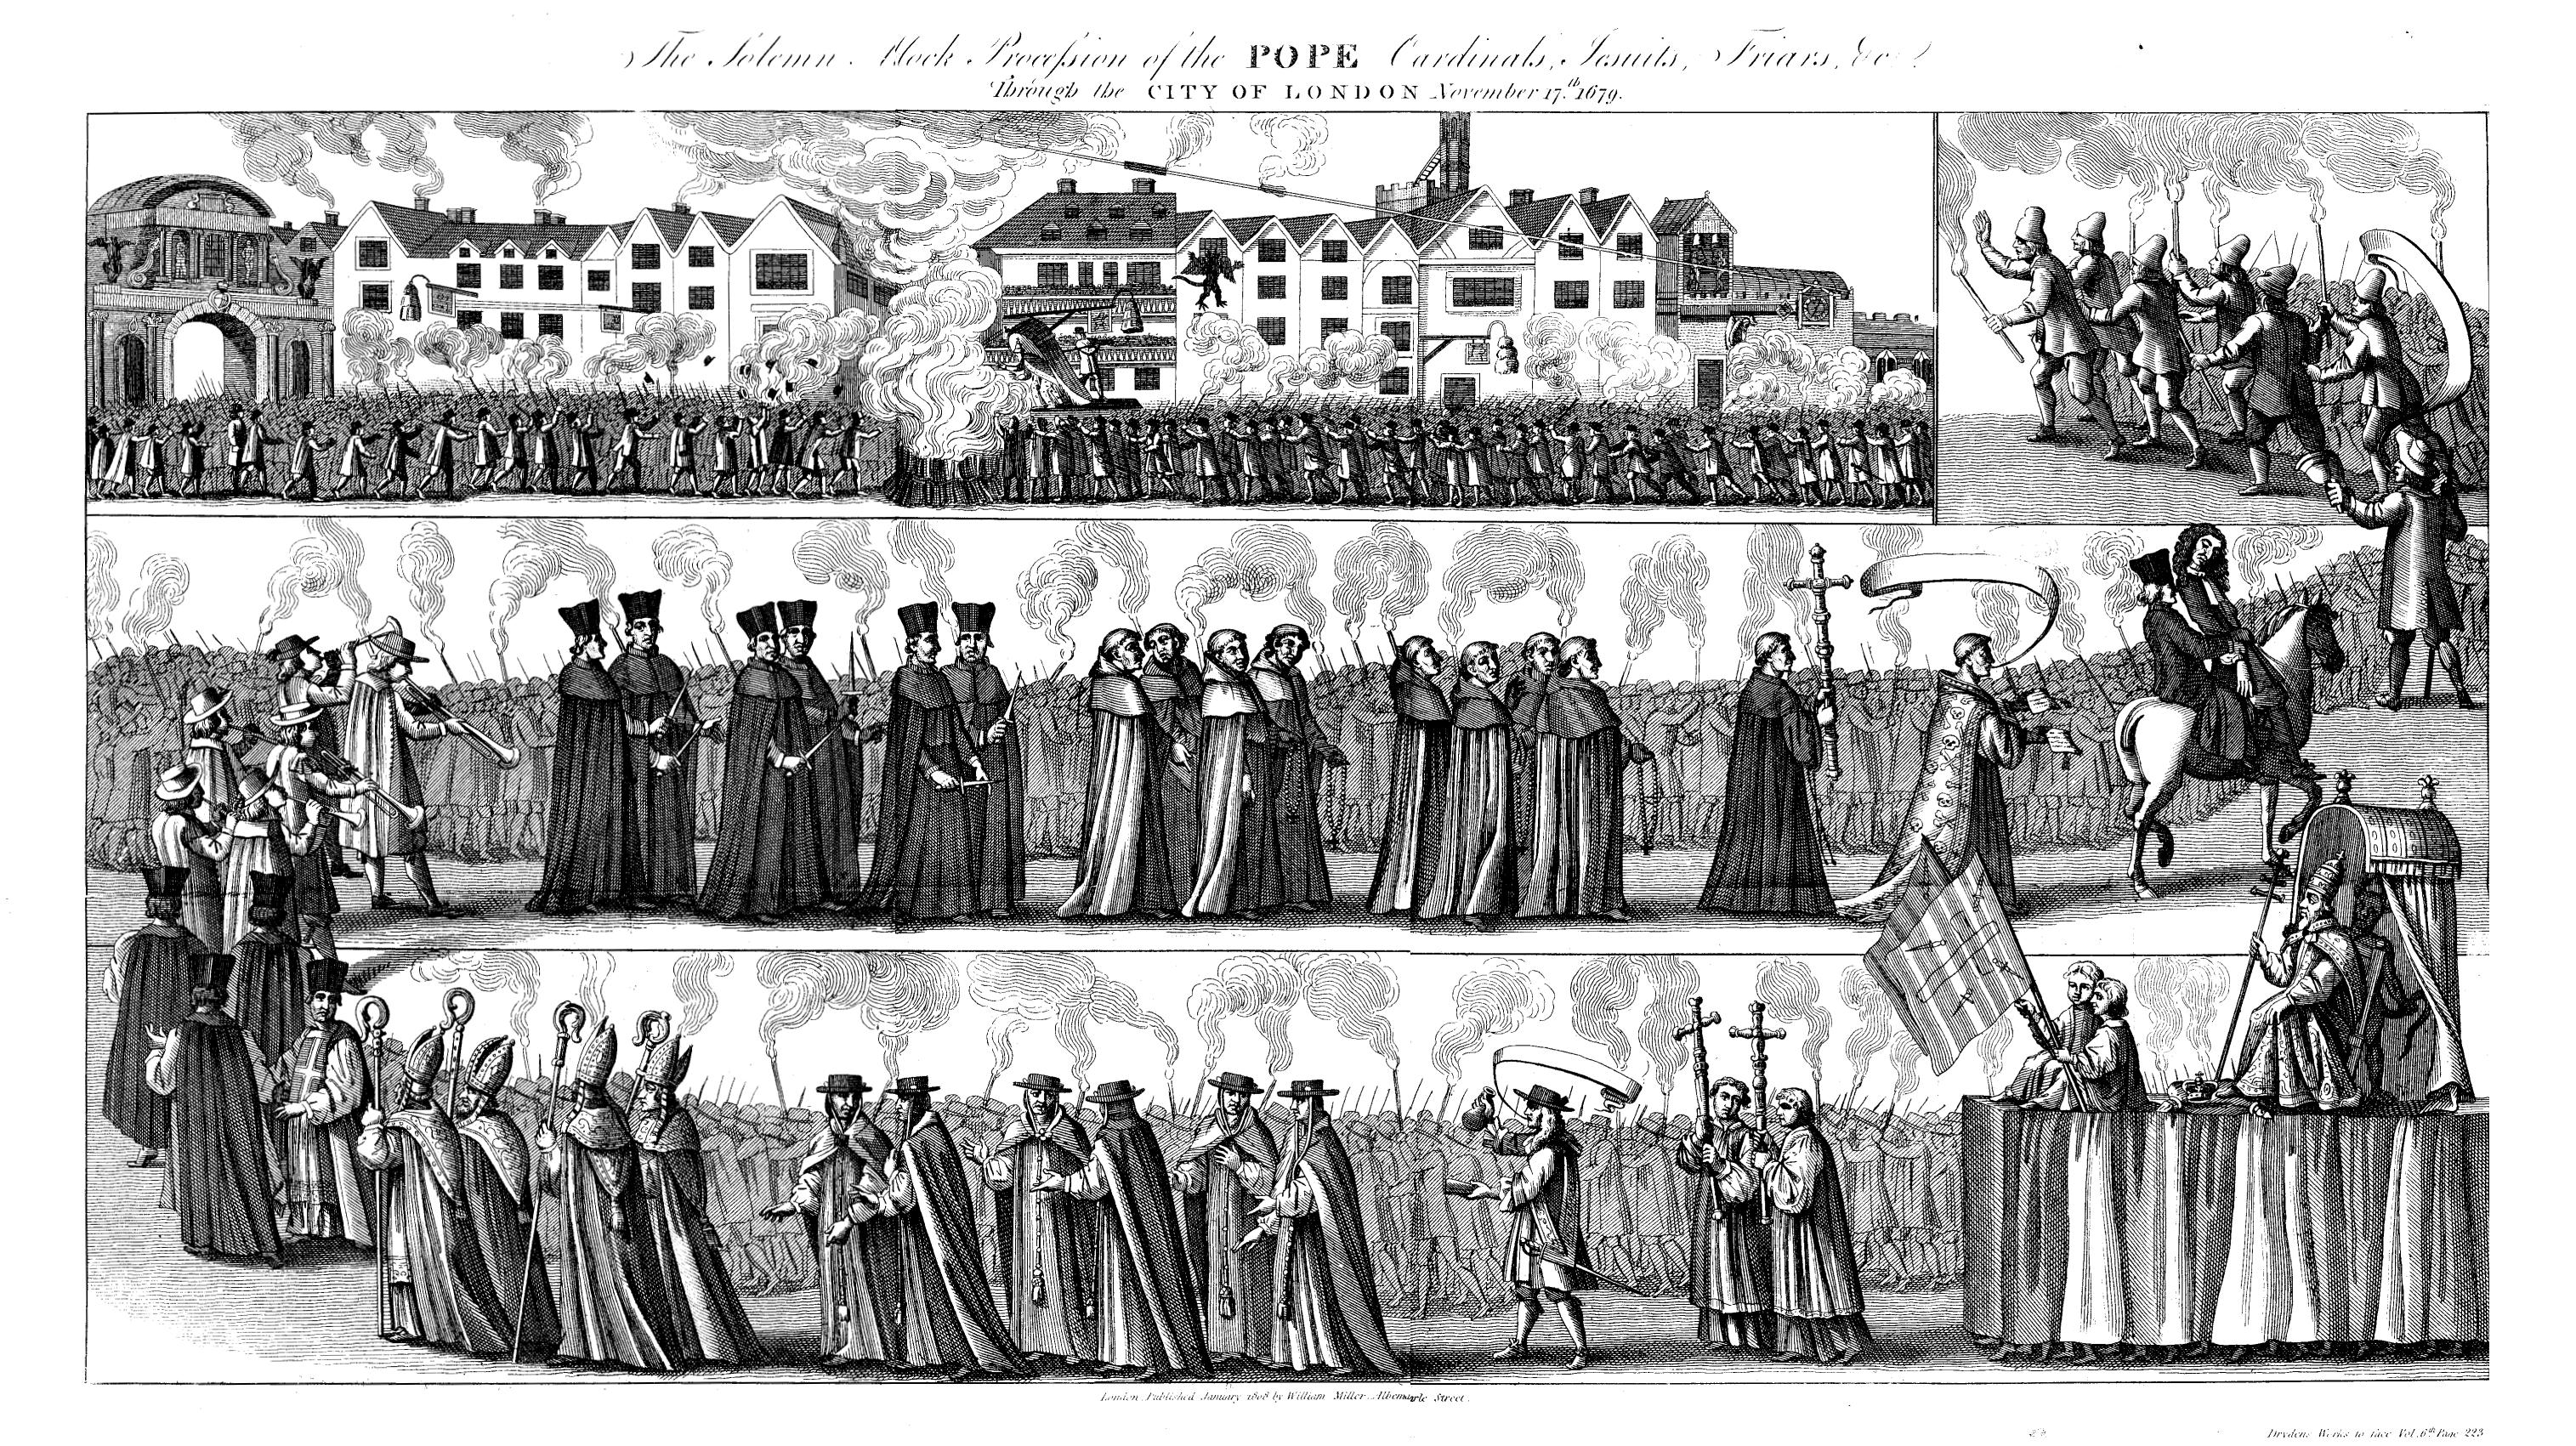 File:The Solemn Mock Procession of the Pope (1829).jpg